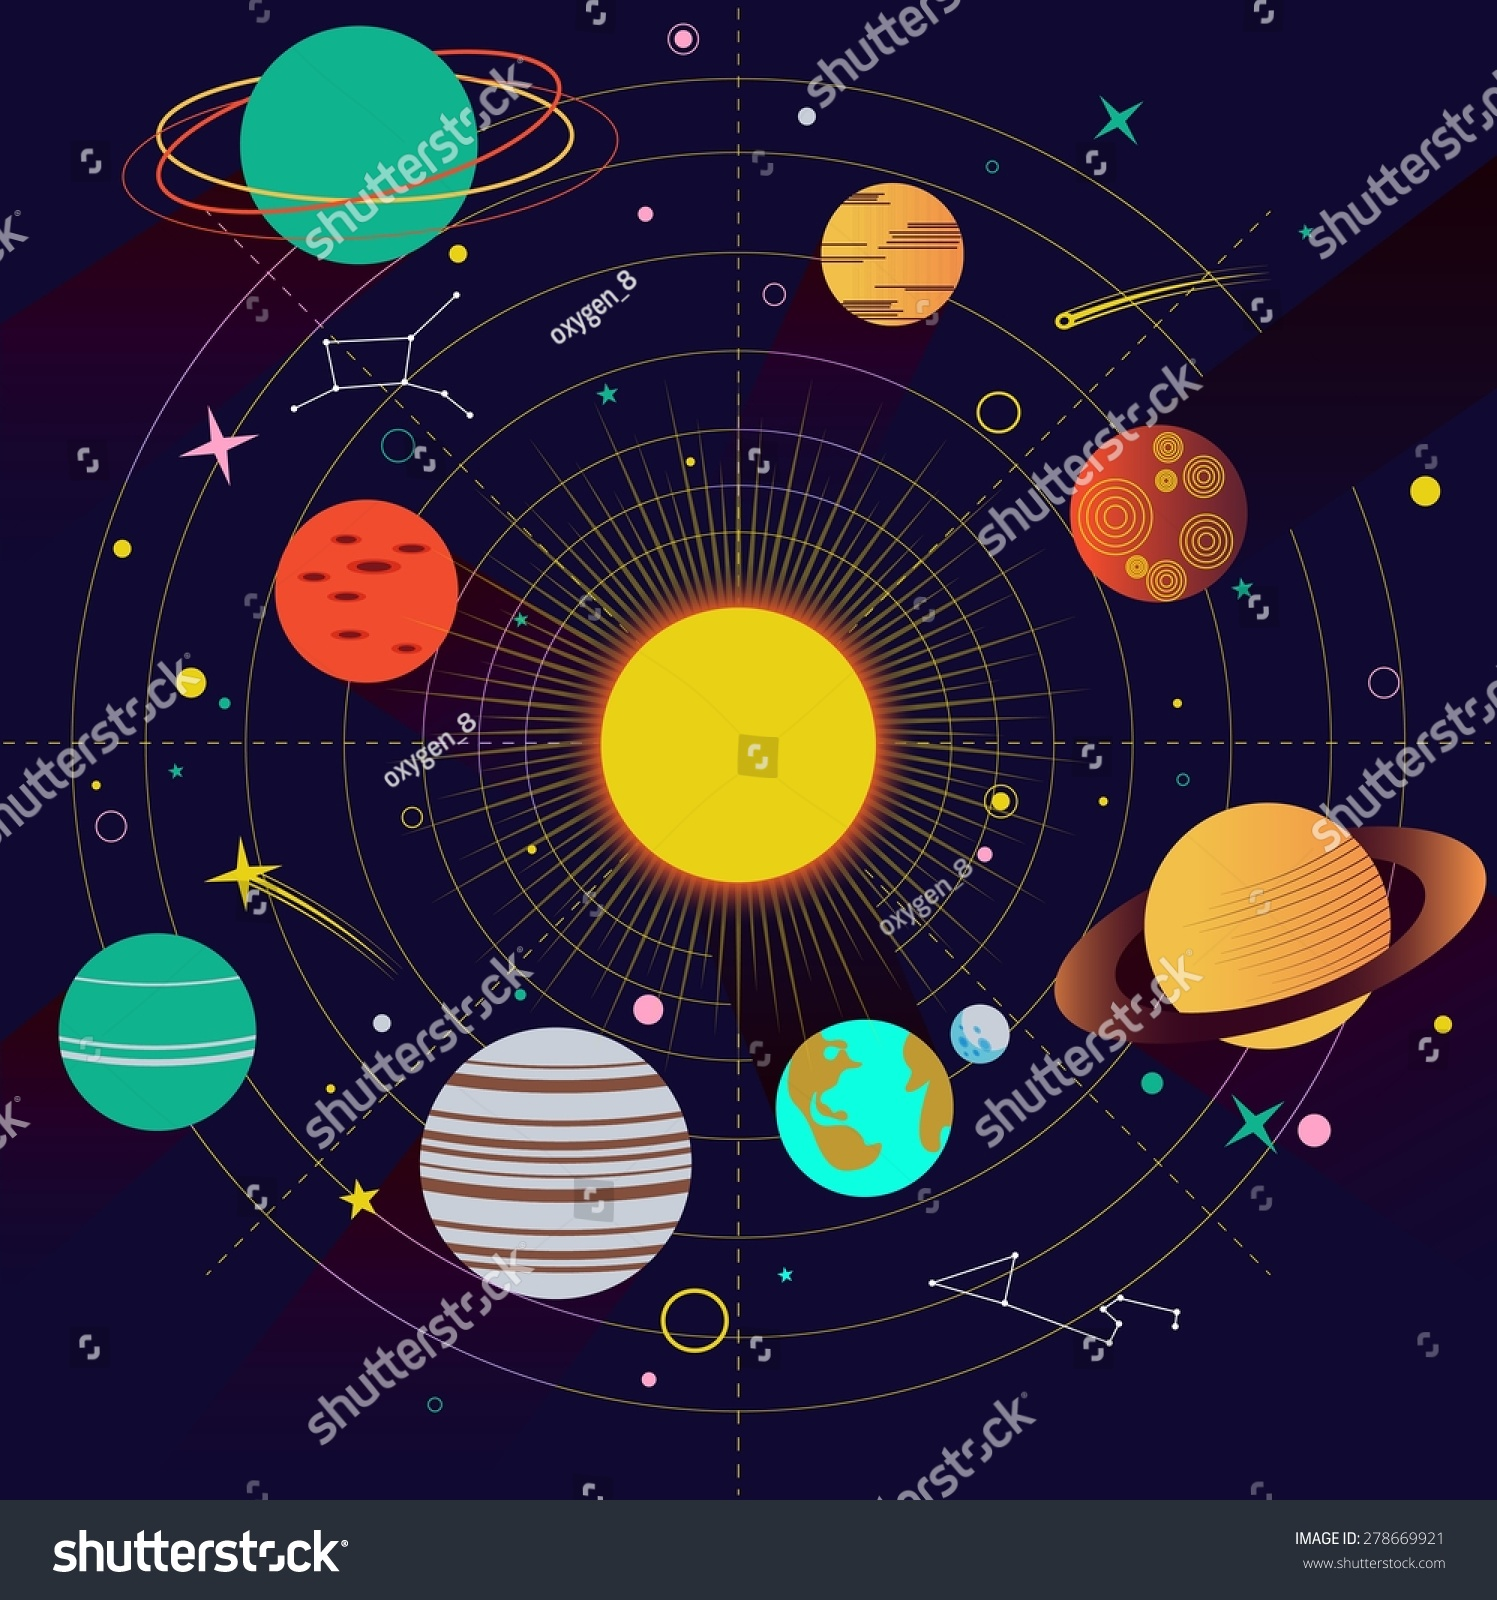 Abstract Universe Wallpaper In Flat Design Style With Solar System And Planet Comparison Rocket Space